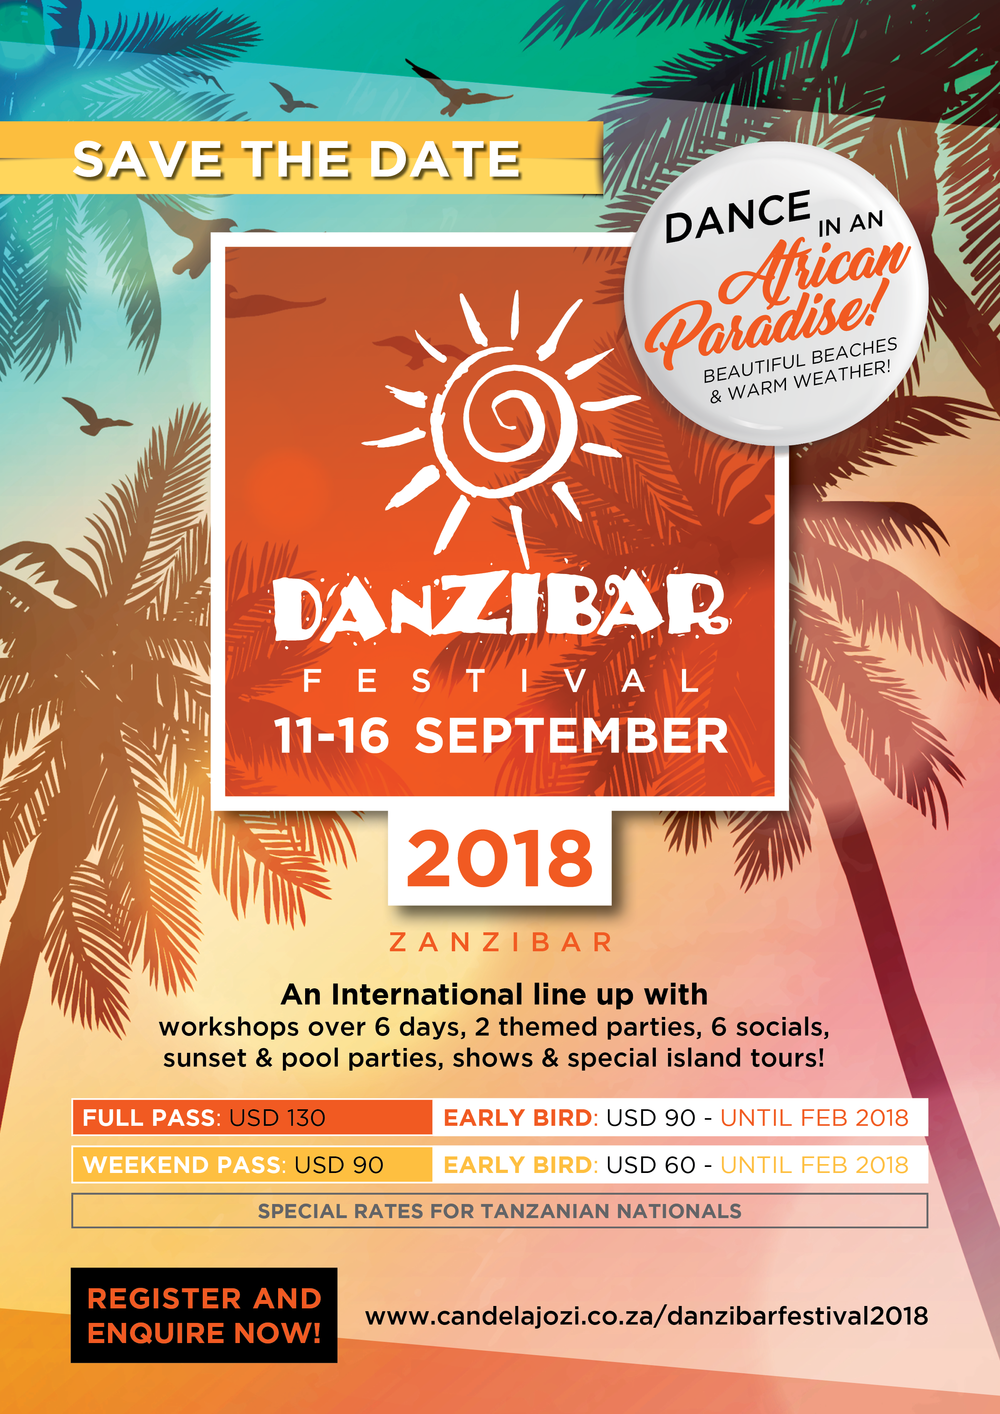 Danzibar Festival 2018_Early bird poster 1 for web_large_20171117.png